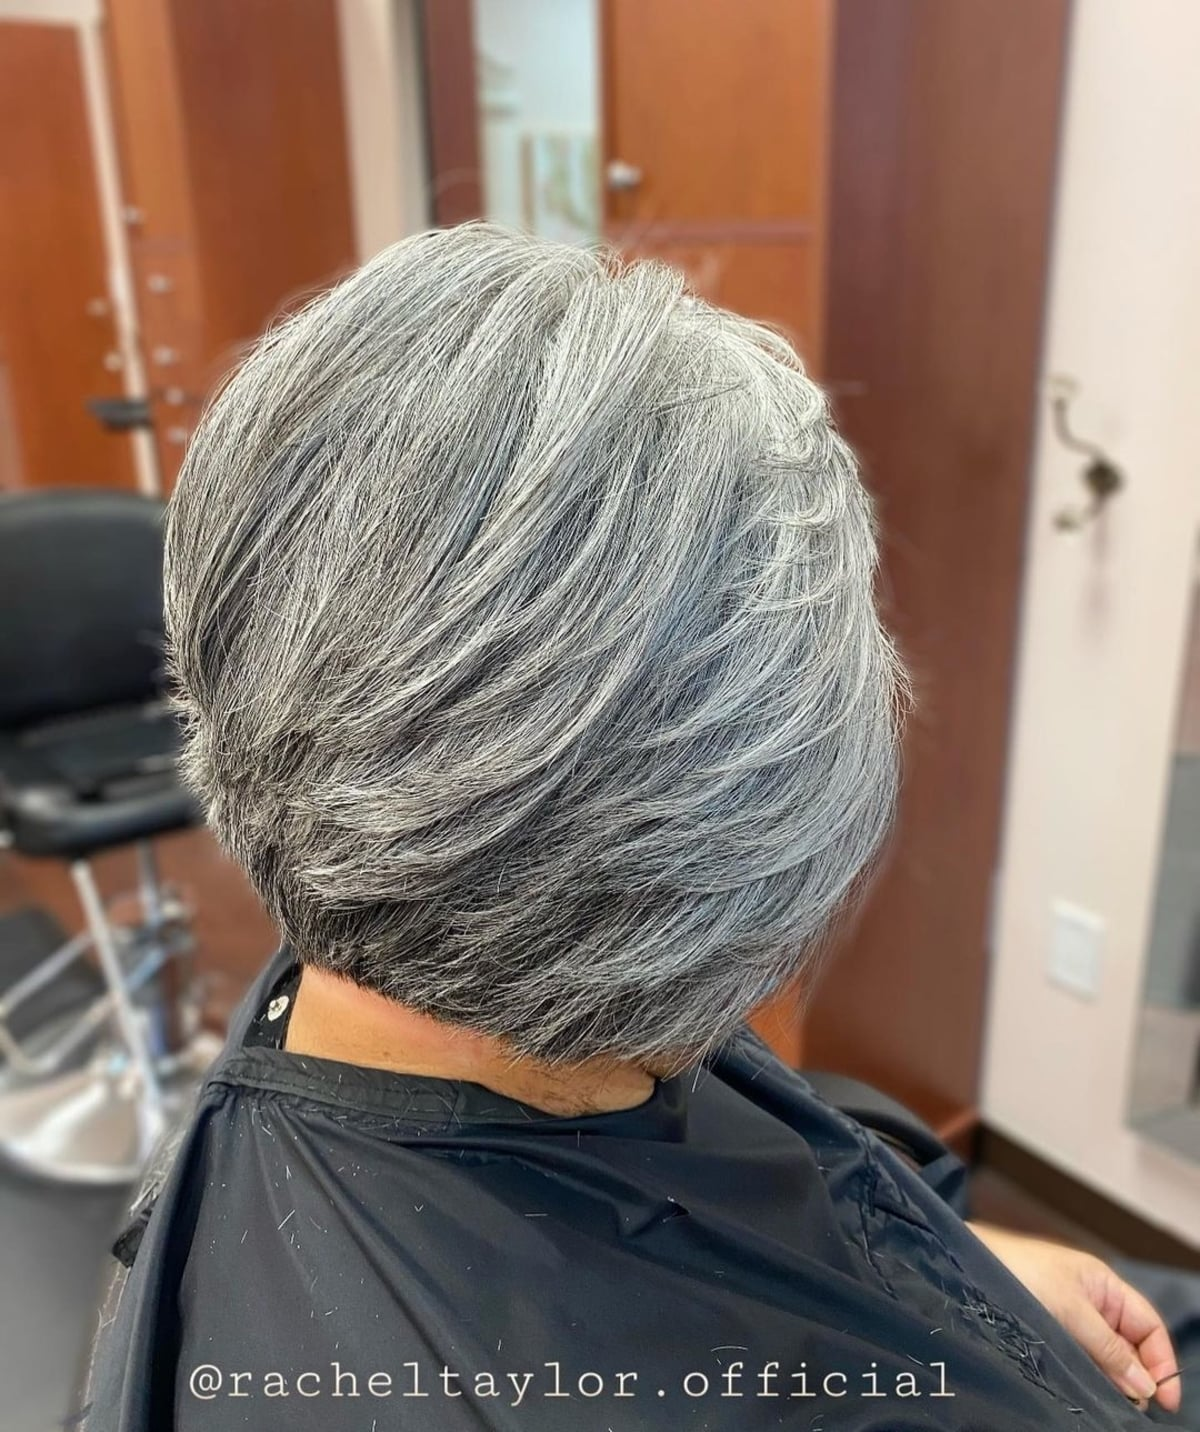 18 Youthful-Looking Hairstyles for Women Over 60 with Grey Hair